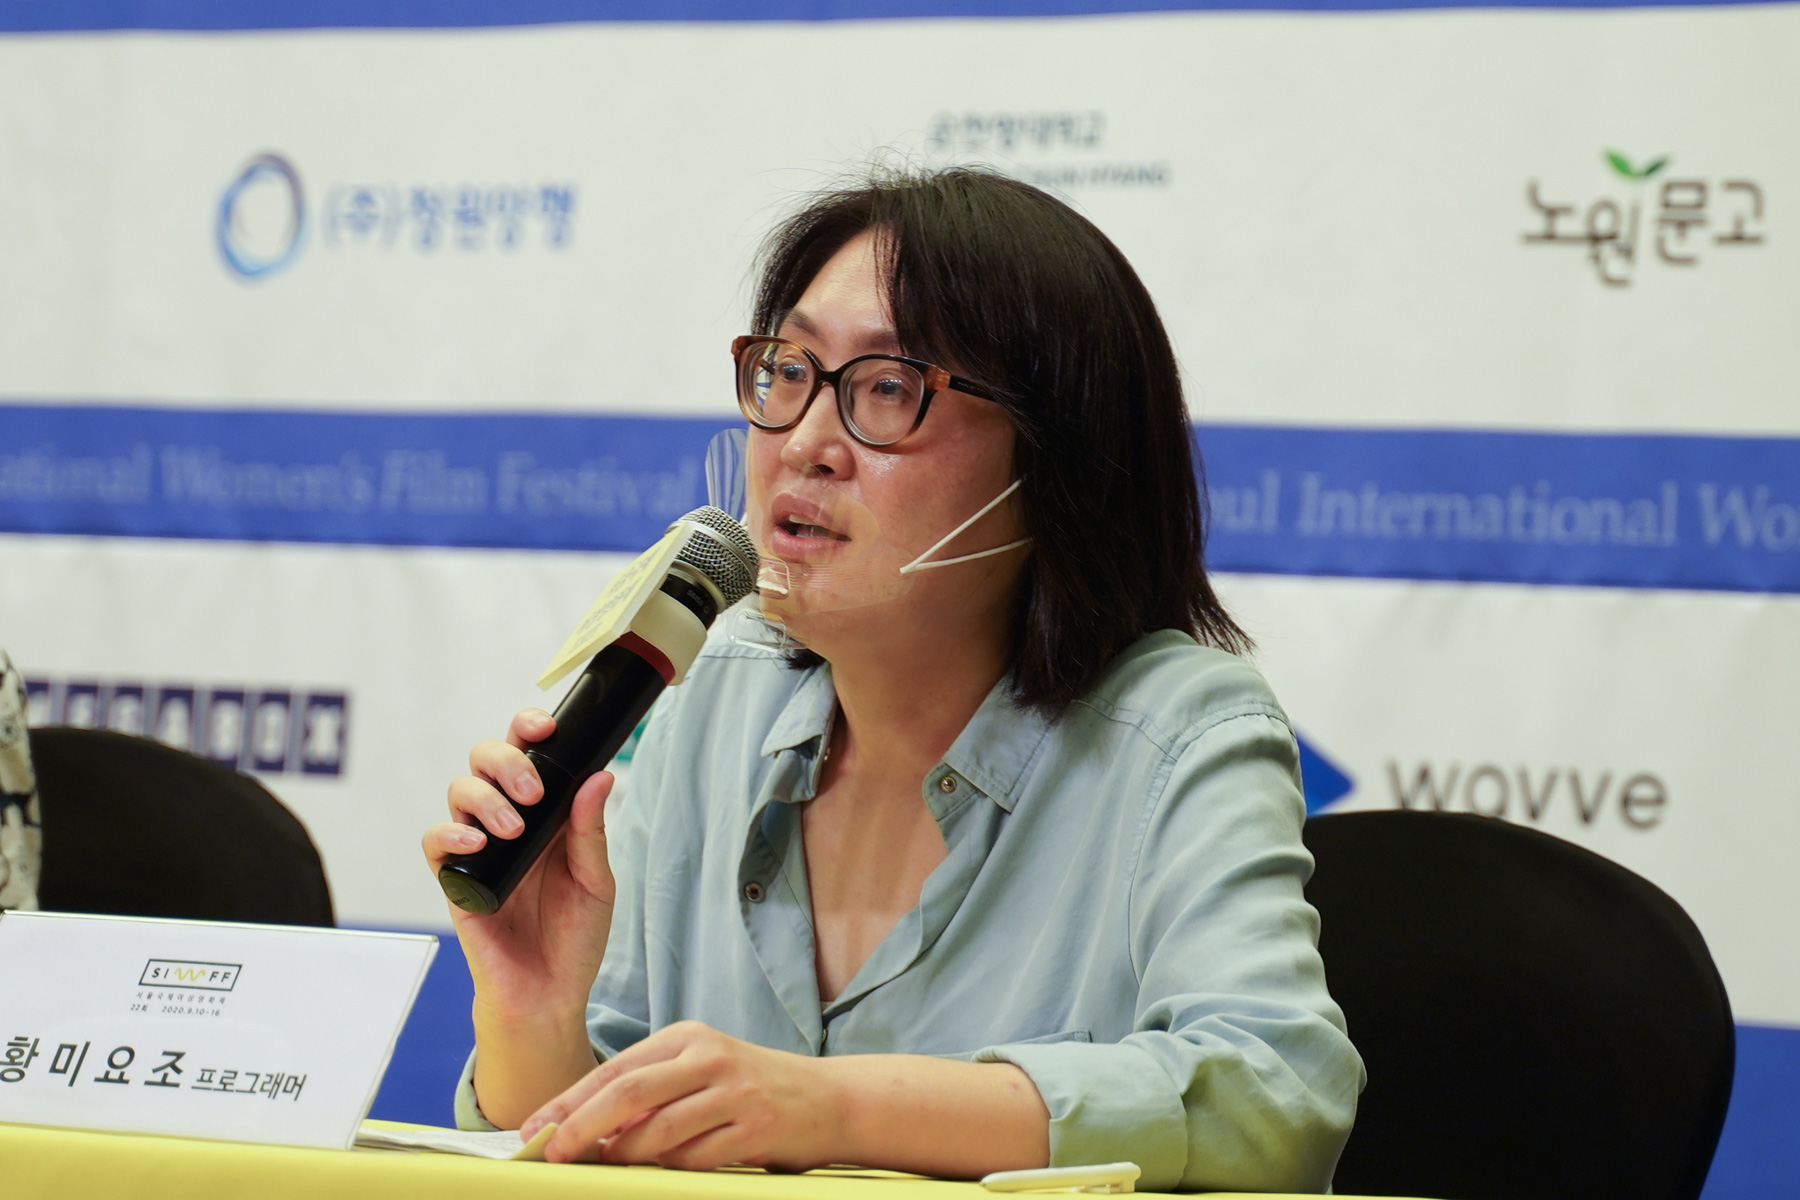 22nd SIWFF's Online Press Conference